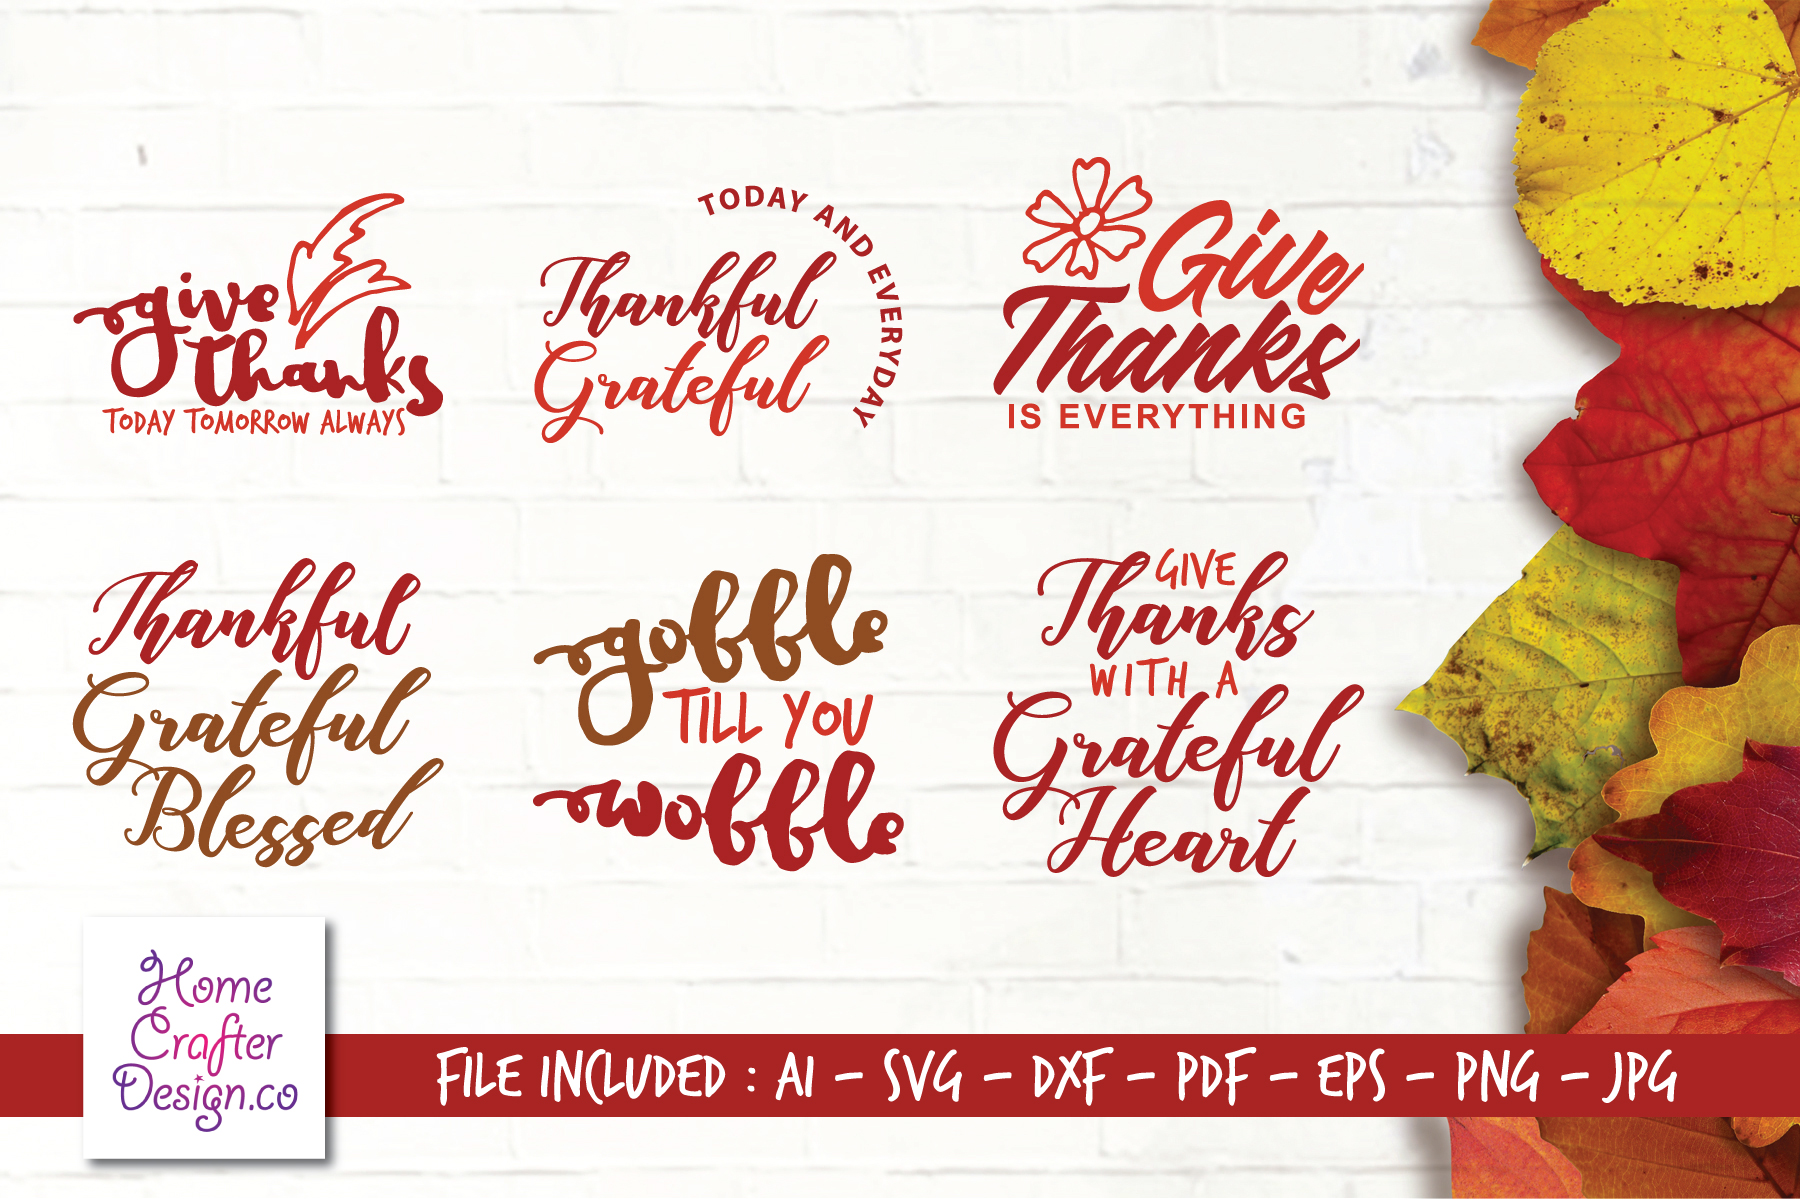 Thanksgiving Bundle Graphic By Home Crafter Design Co Creative